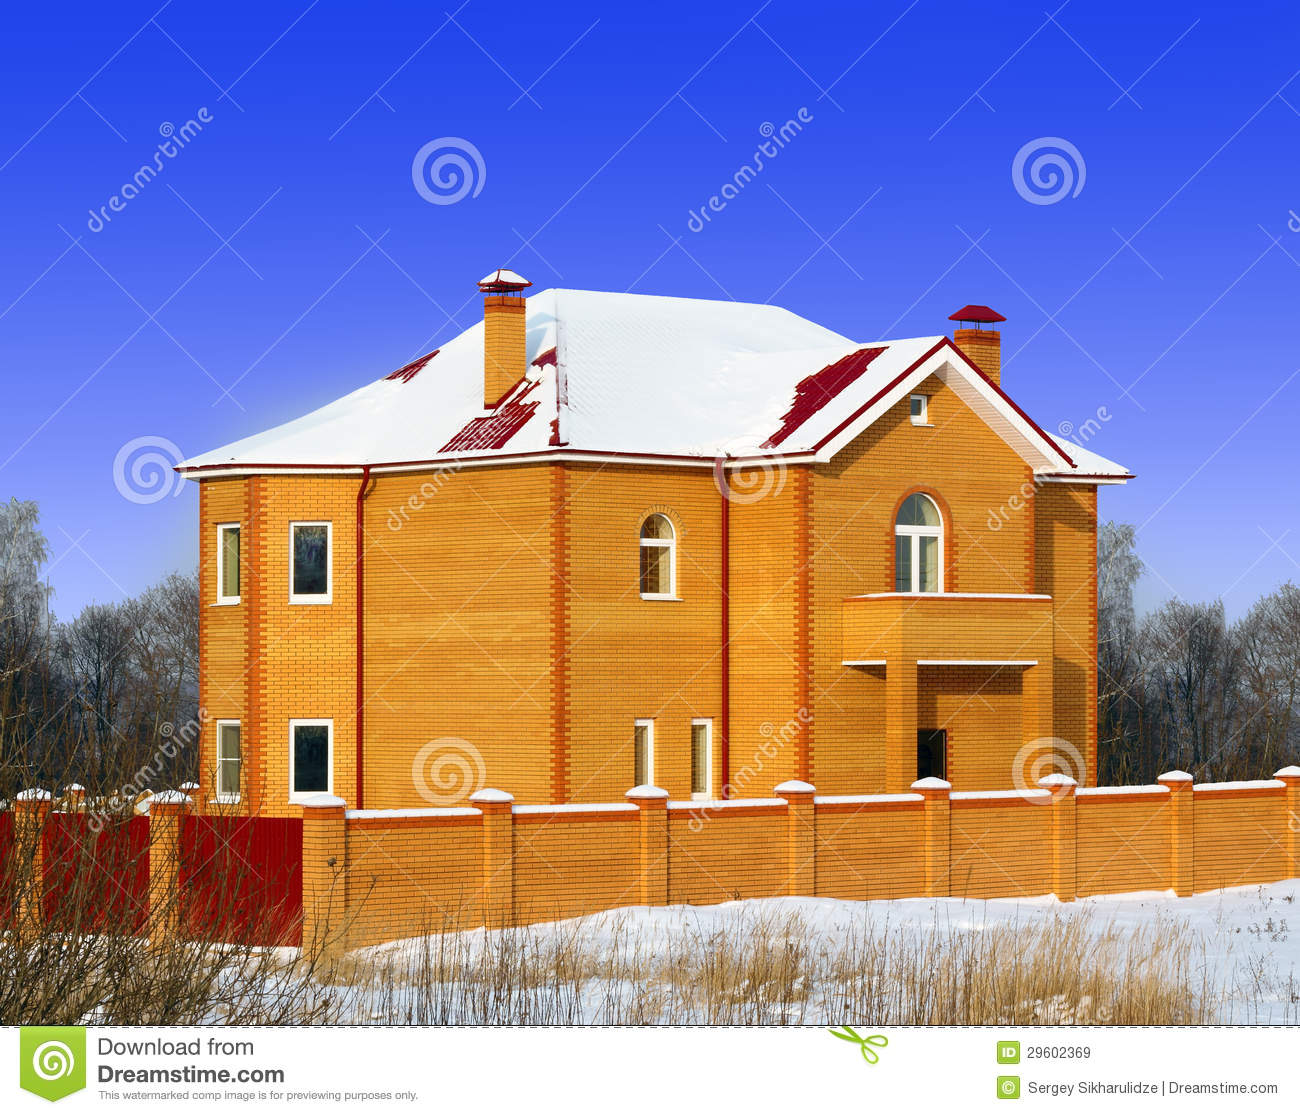 The New Brick House With The Red Roof Royalty Free Stock